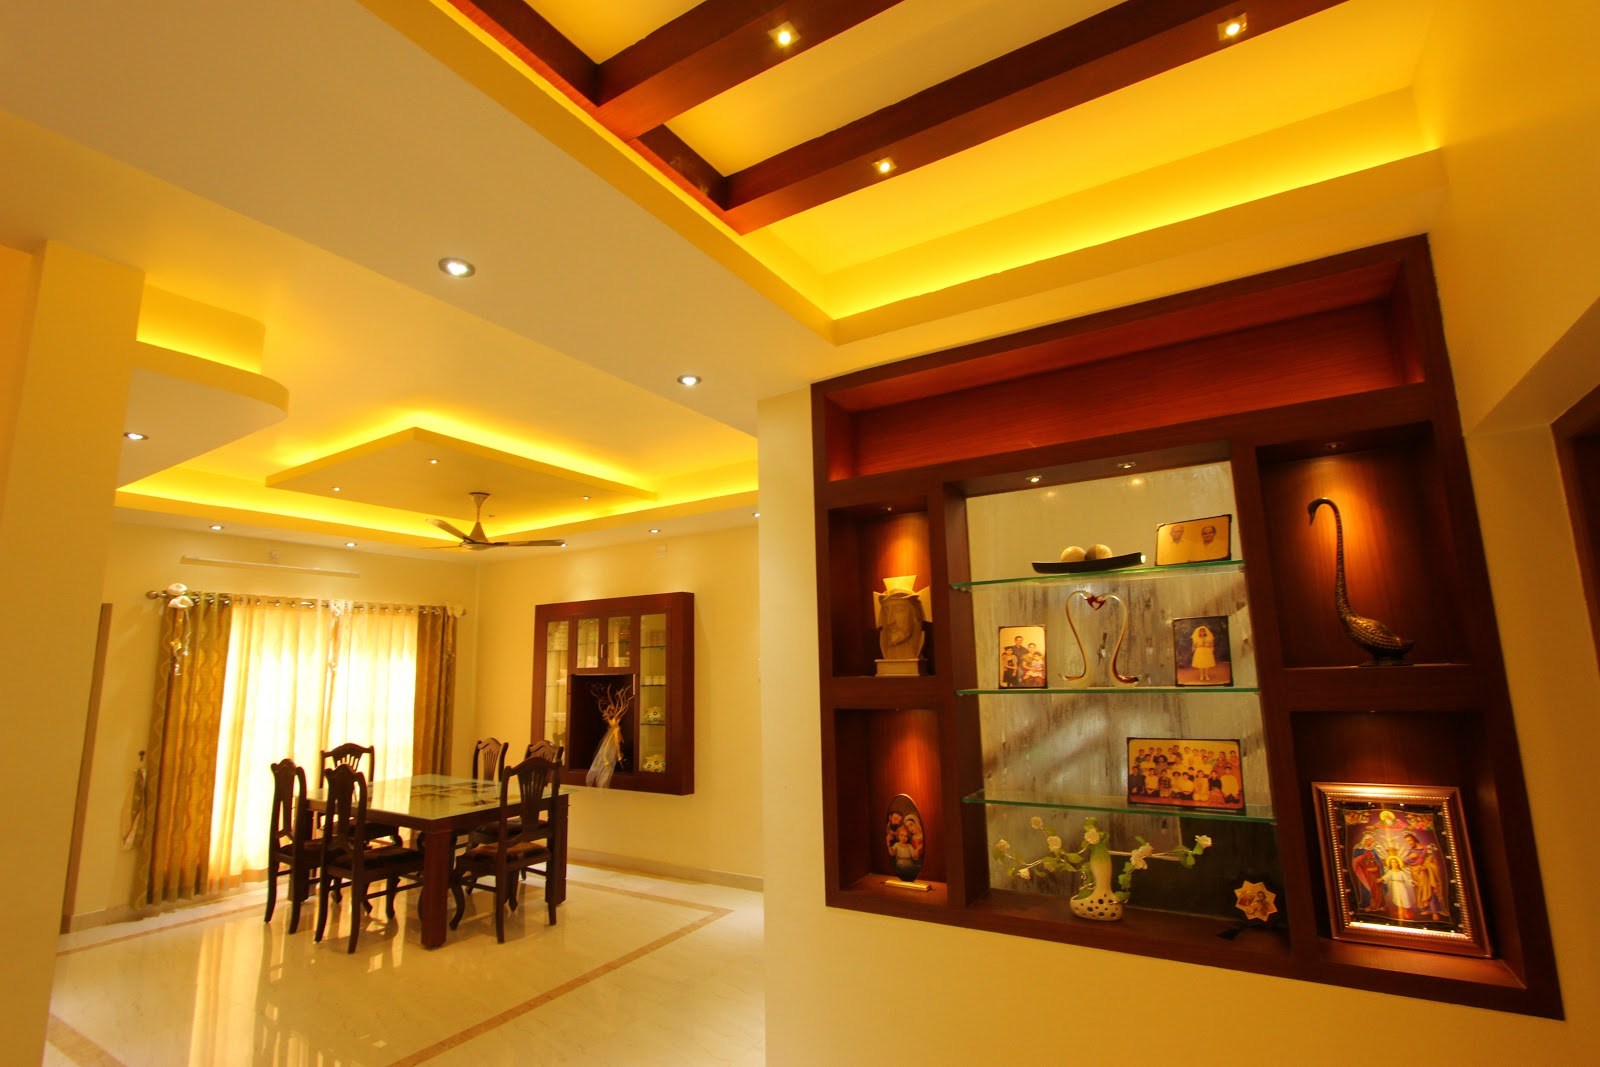 Shilpakala interiors award winning home interior design by shilpakala interiors Interior designing of your home